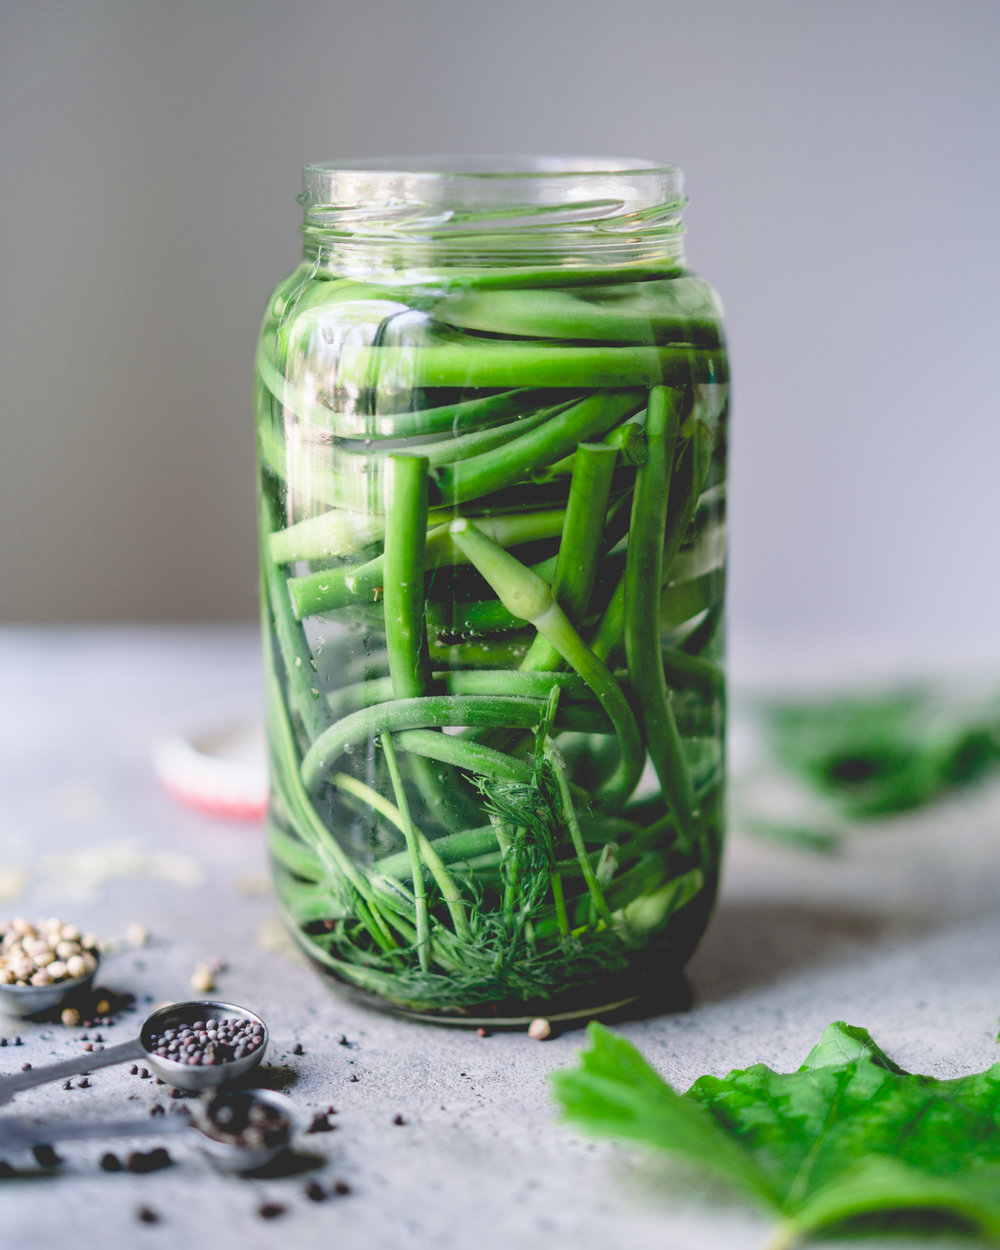 Lacto-Fermented Garlic Scapes - for one liter/quart jar